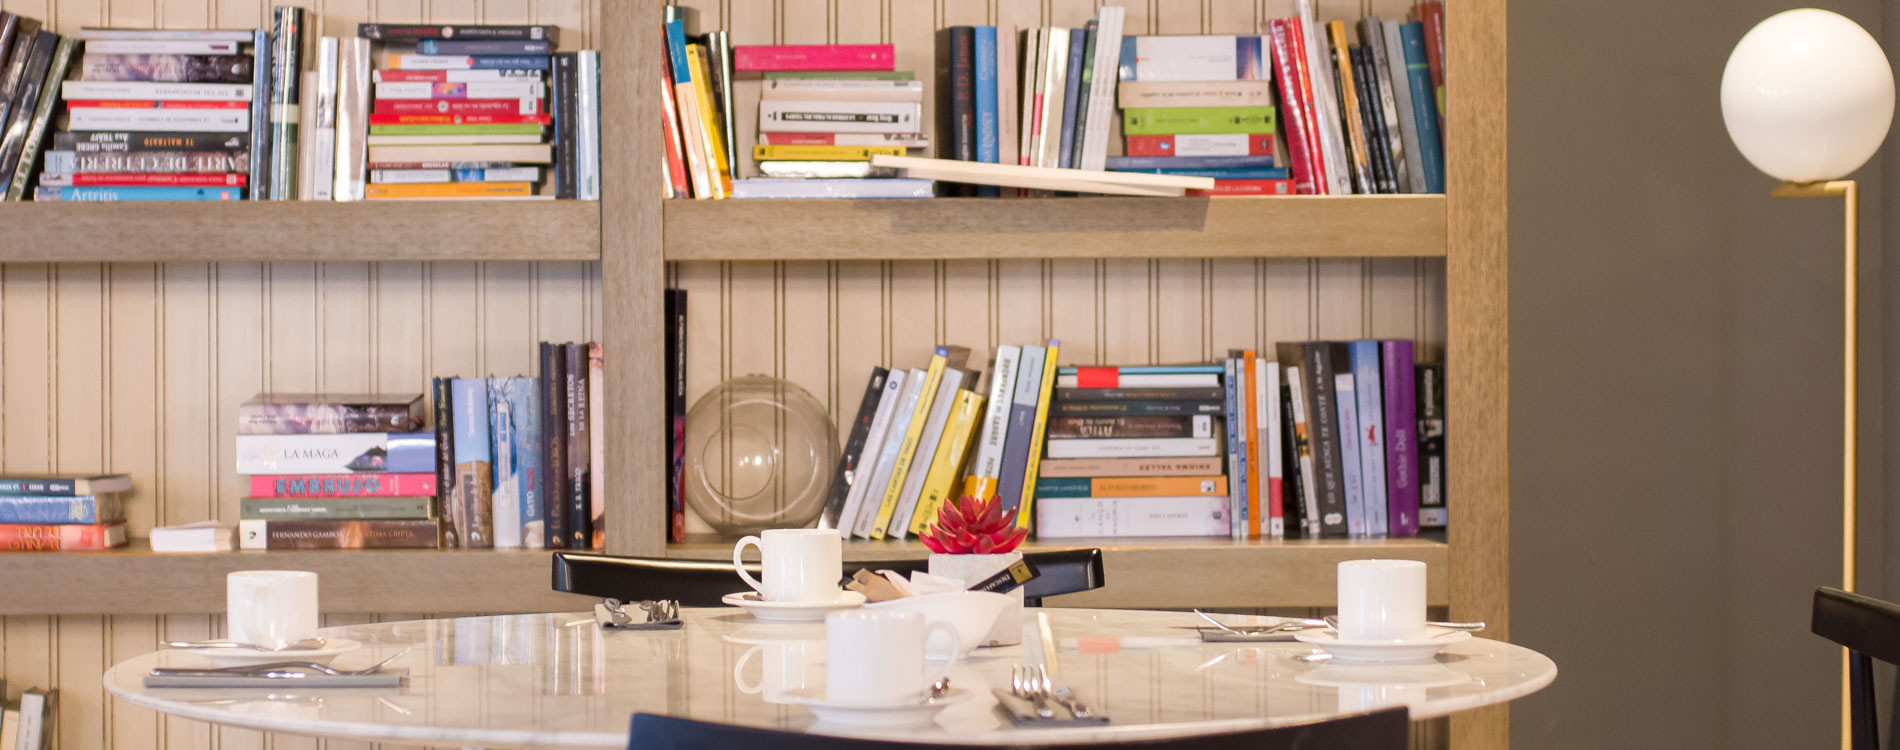 Galer a one shot hotels hoteles boutique y de dise o web oficial - One shot hotels madrid ...